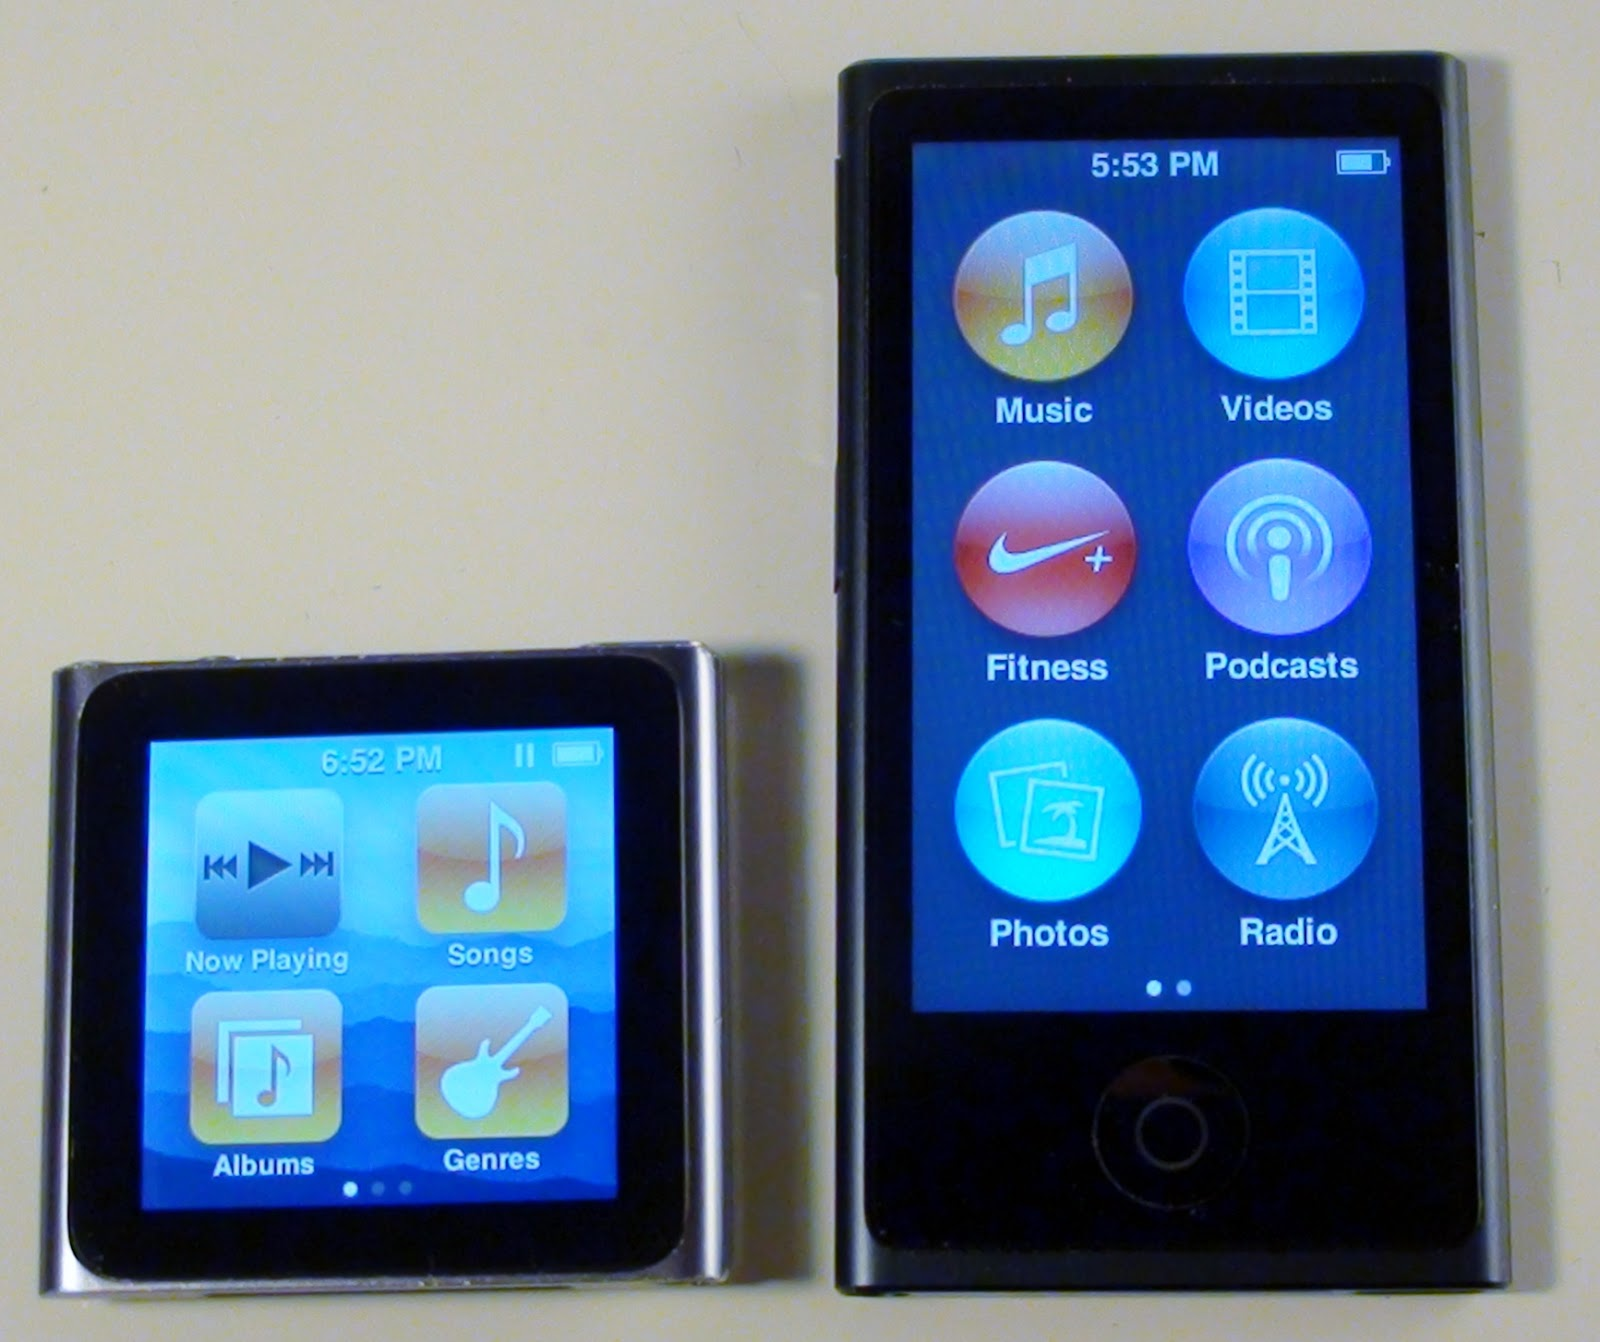 JBA - iPod Nano 7G -  (13) - With 6G